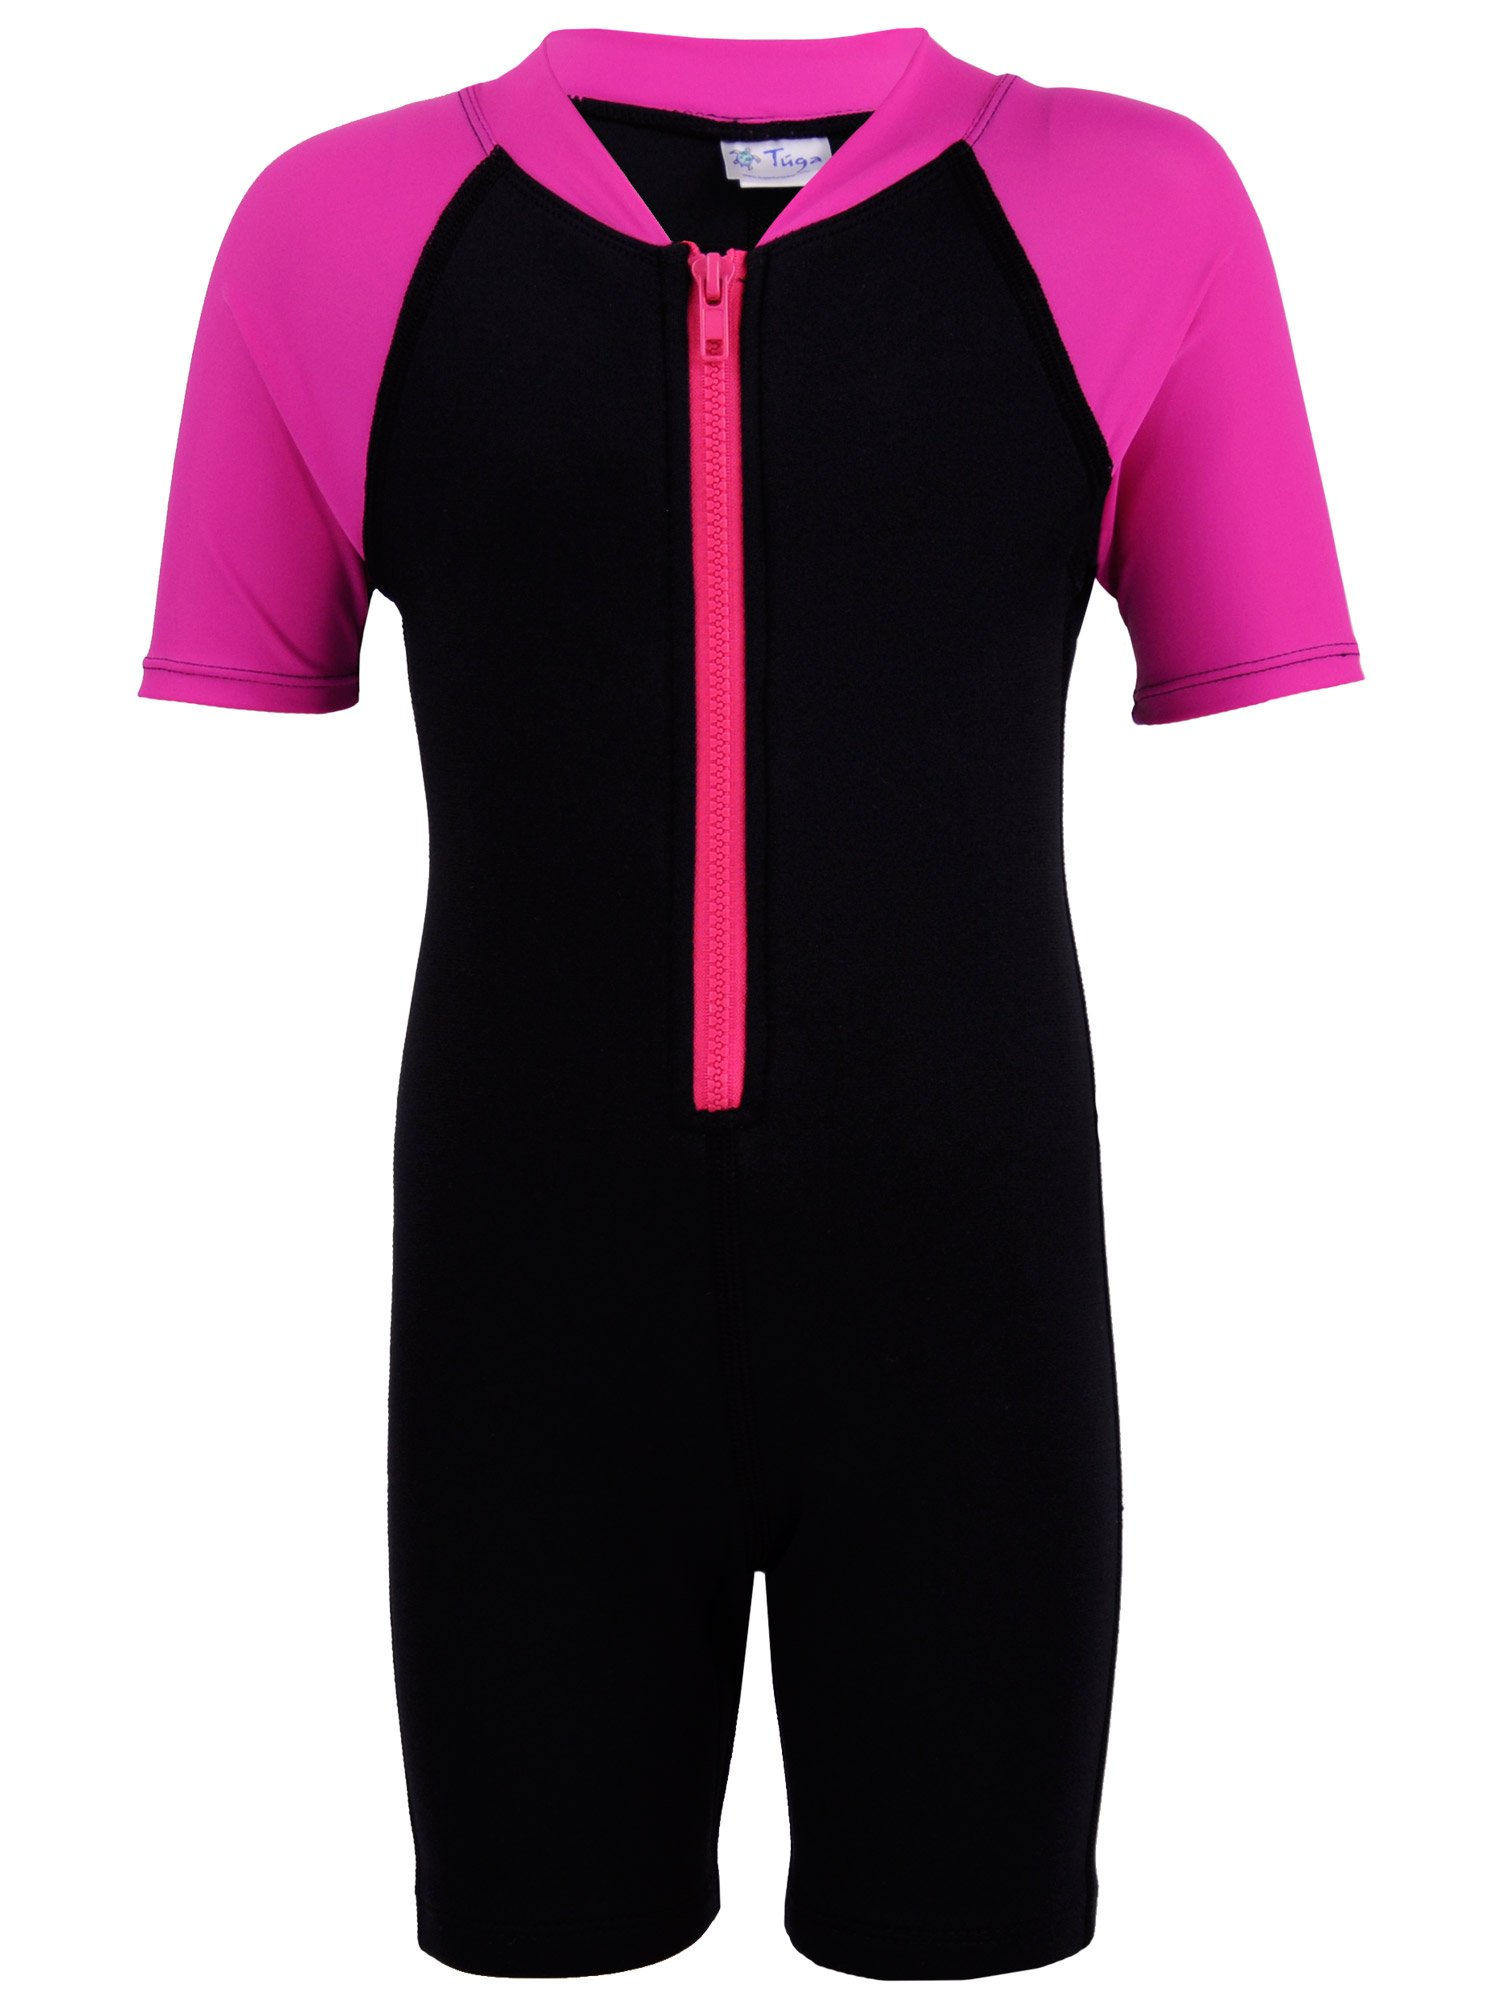 Tuga Girls Shorty 1.5mm Neoprene/Spandex Wetsuit (UPF 50+), Fuchsia, M (9/10 yrs) by Tuga Sunwear